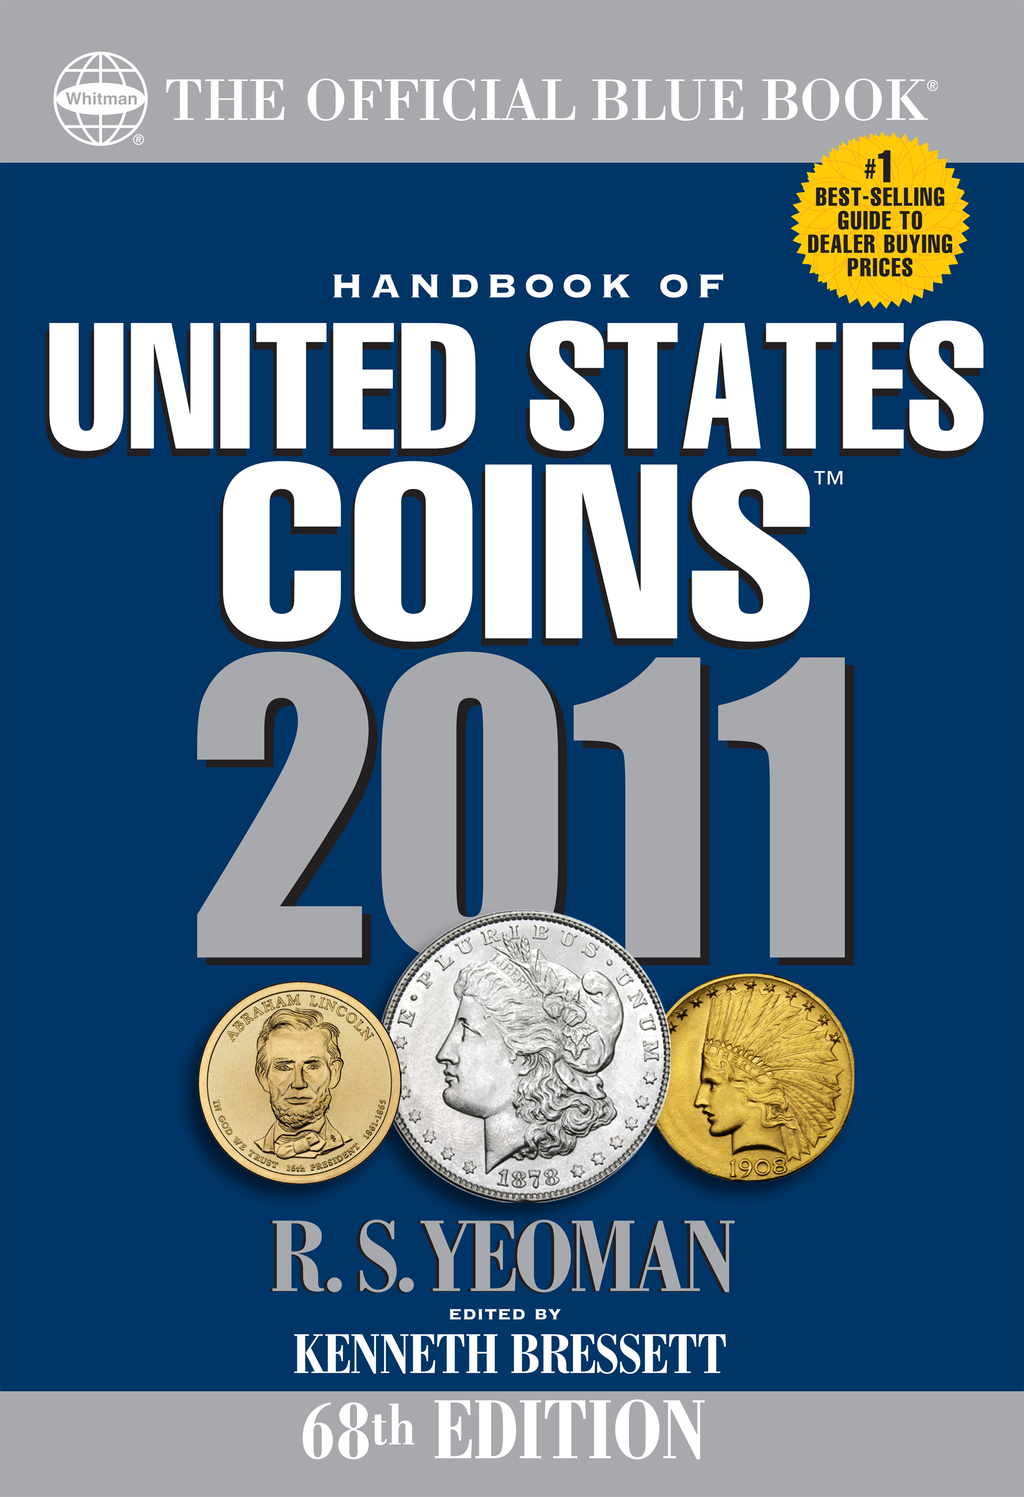 The Official Blue Book: Handbook of United States Coins: Handbook of United States Coins